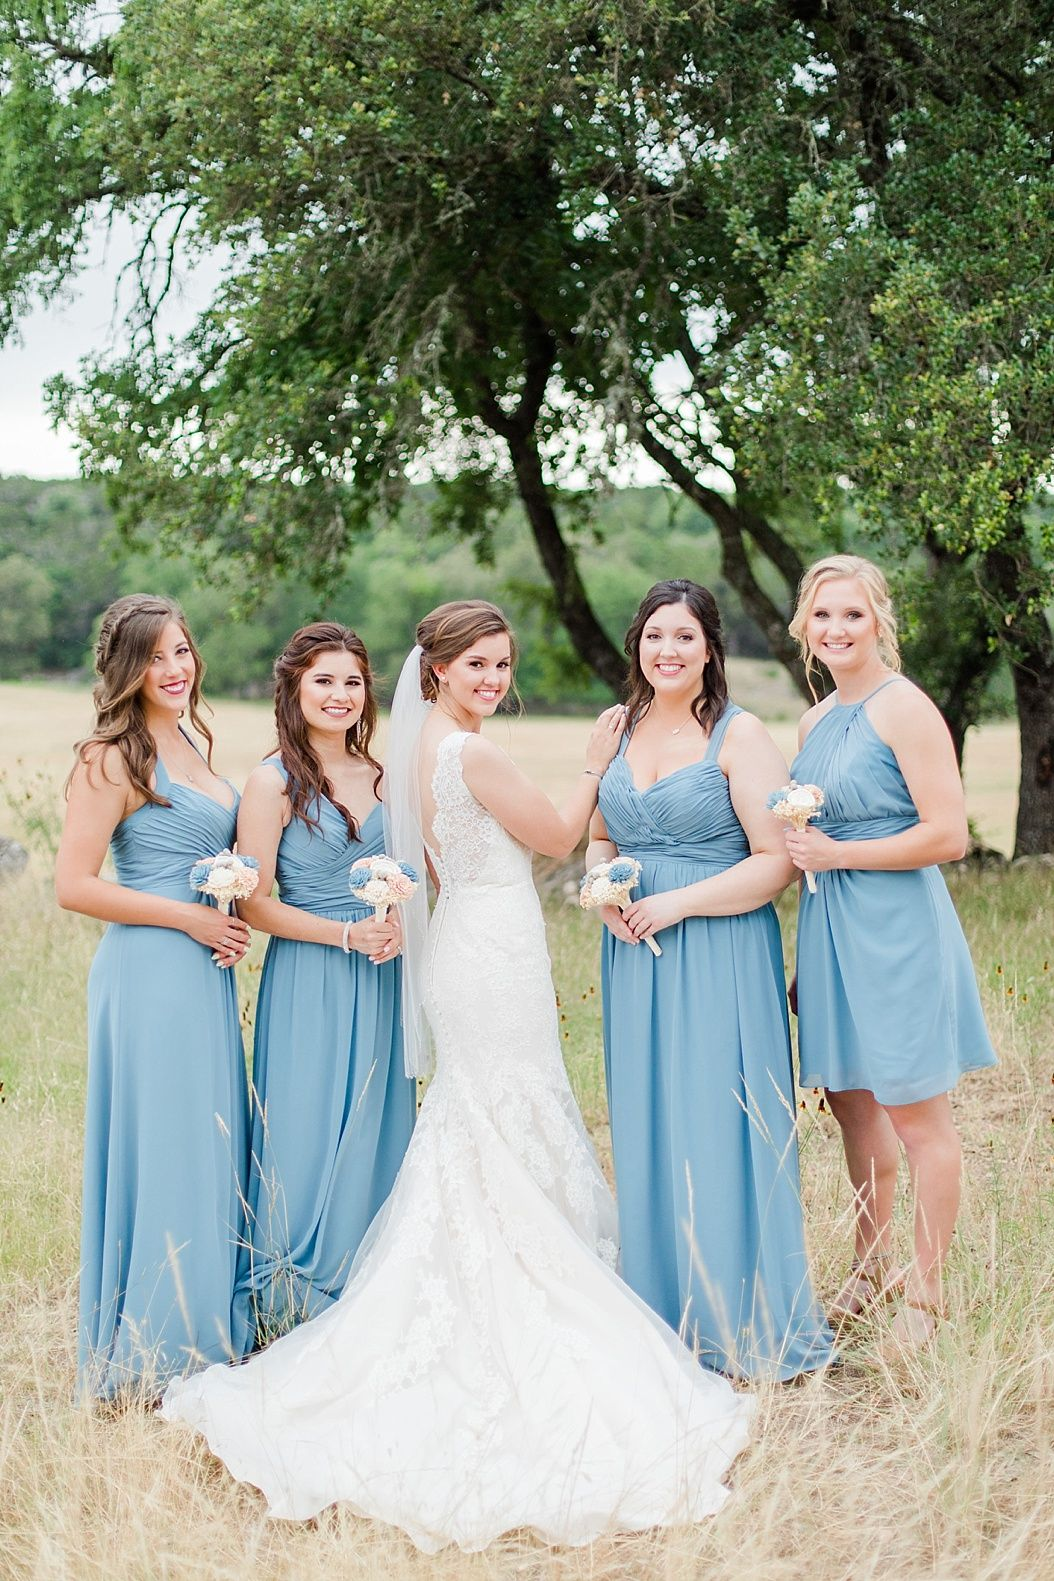 Haley kyle powder blue bridesmaid dresses and ranch weddings dusty blue wedding powder blue wedding slate blue wedding dusty blue bridesmaid dresses ombrellifo Gallery